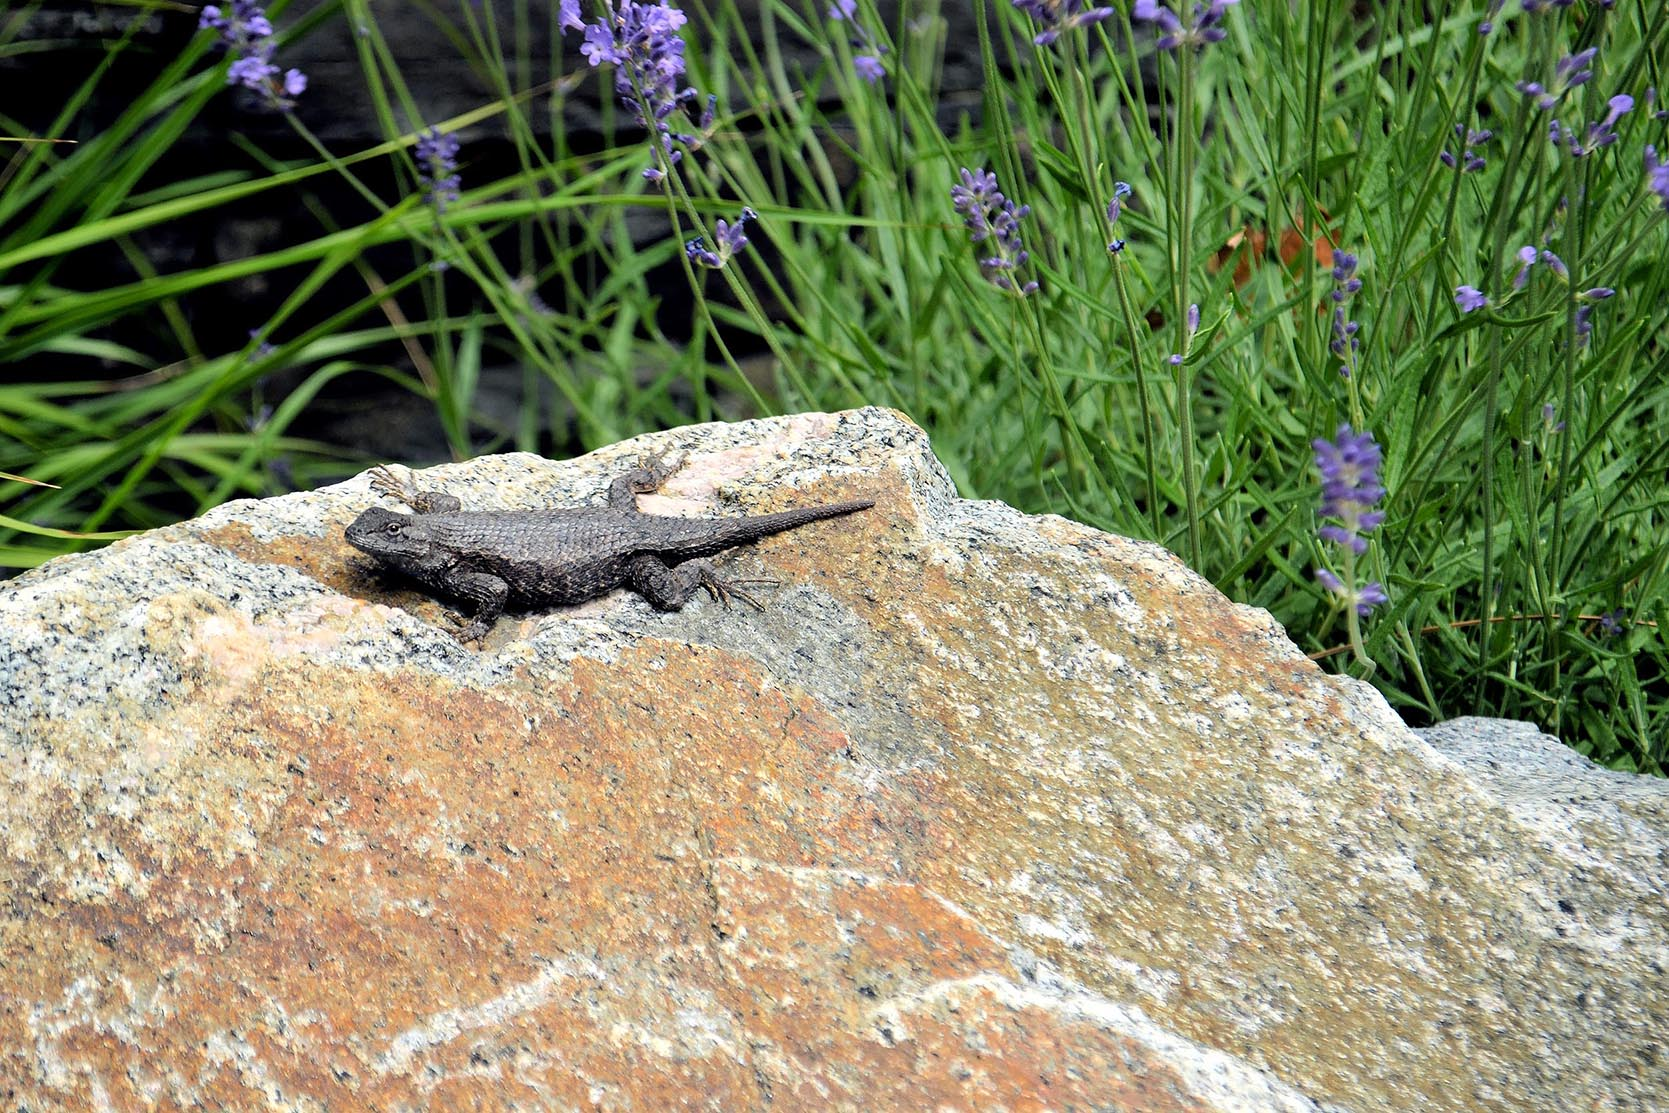 Lizzard Sitting on a Granite Rock with Lavender Blooms